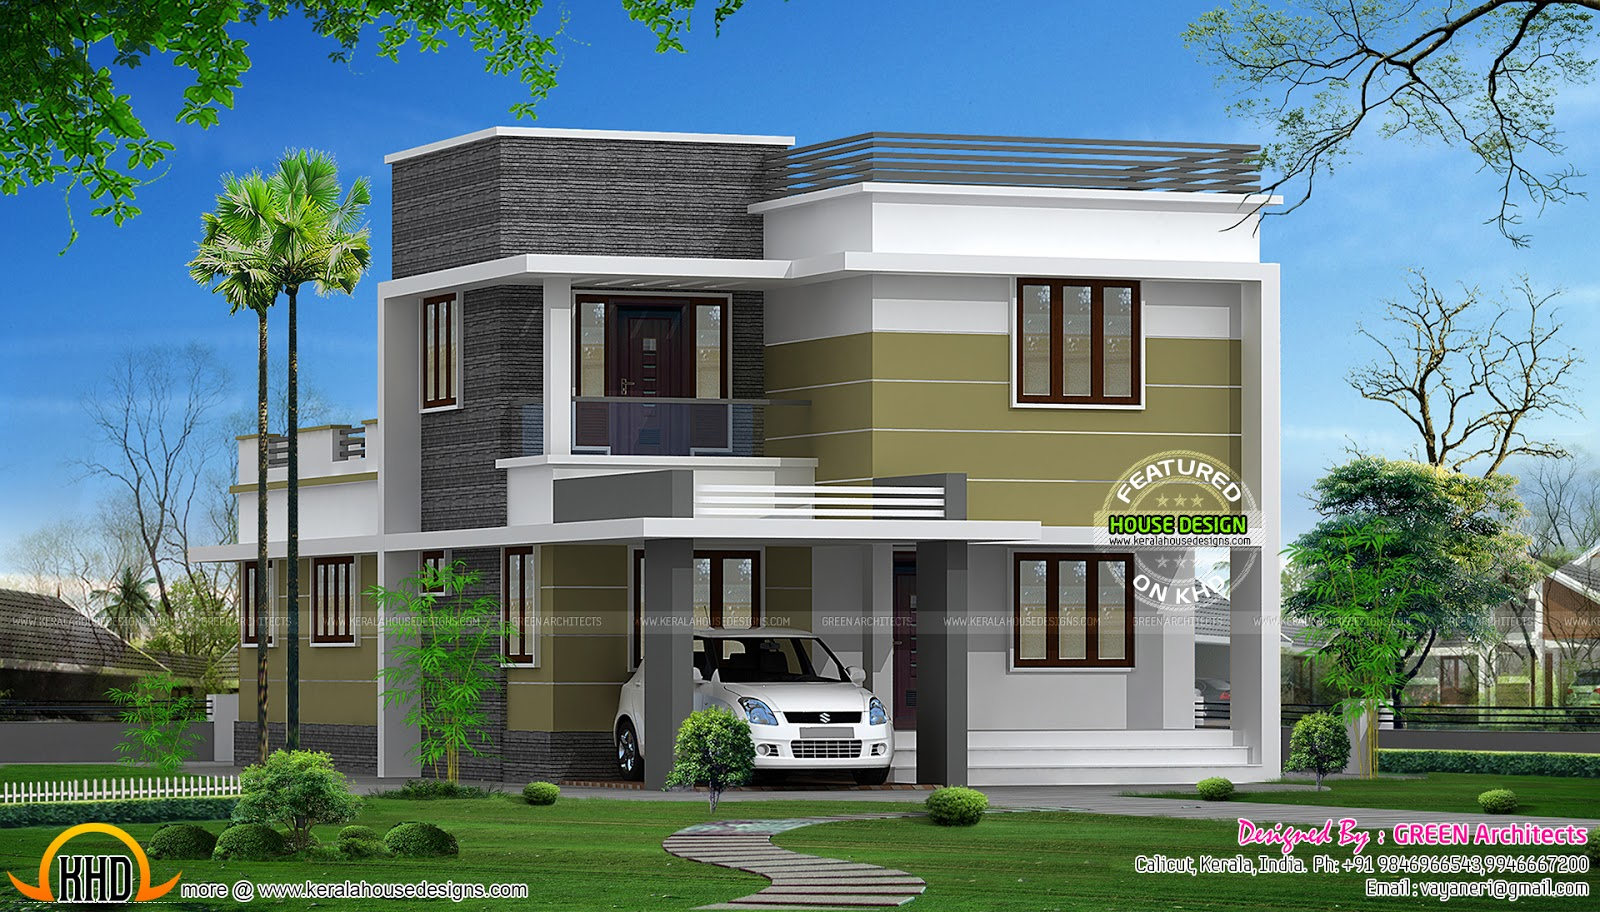 186 sq m small double storied house in kerala kerala for Beautiful small house plans